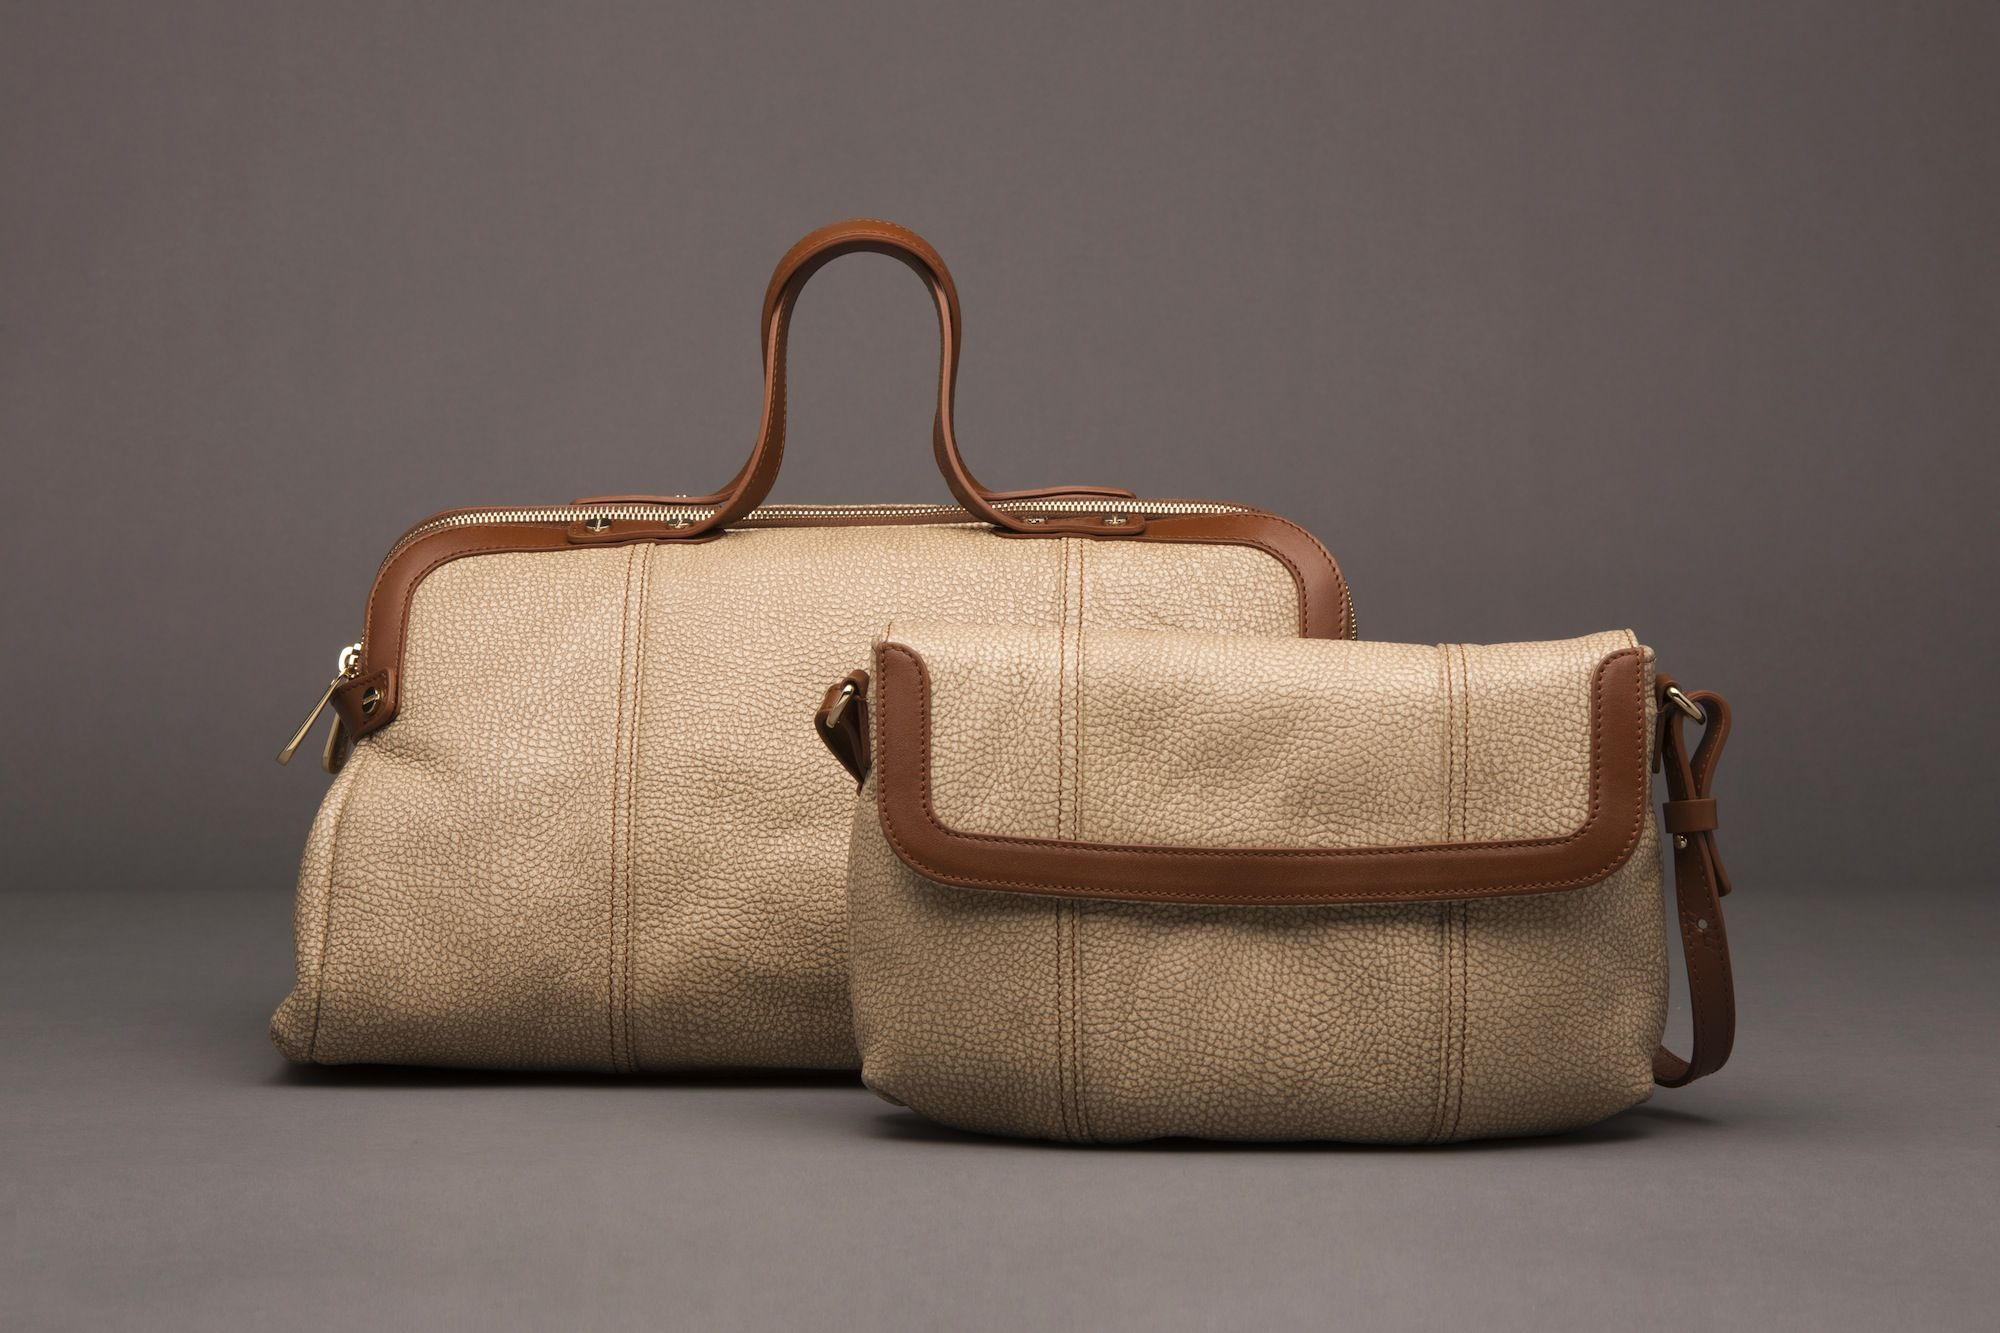 Borbonese Bags SS 14